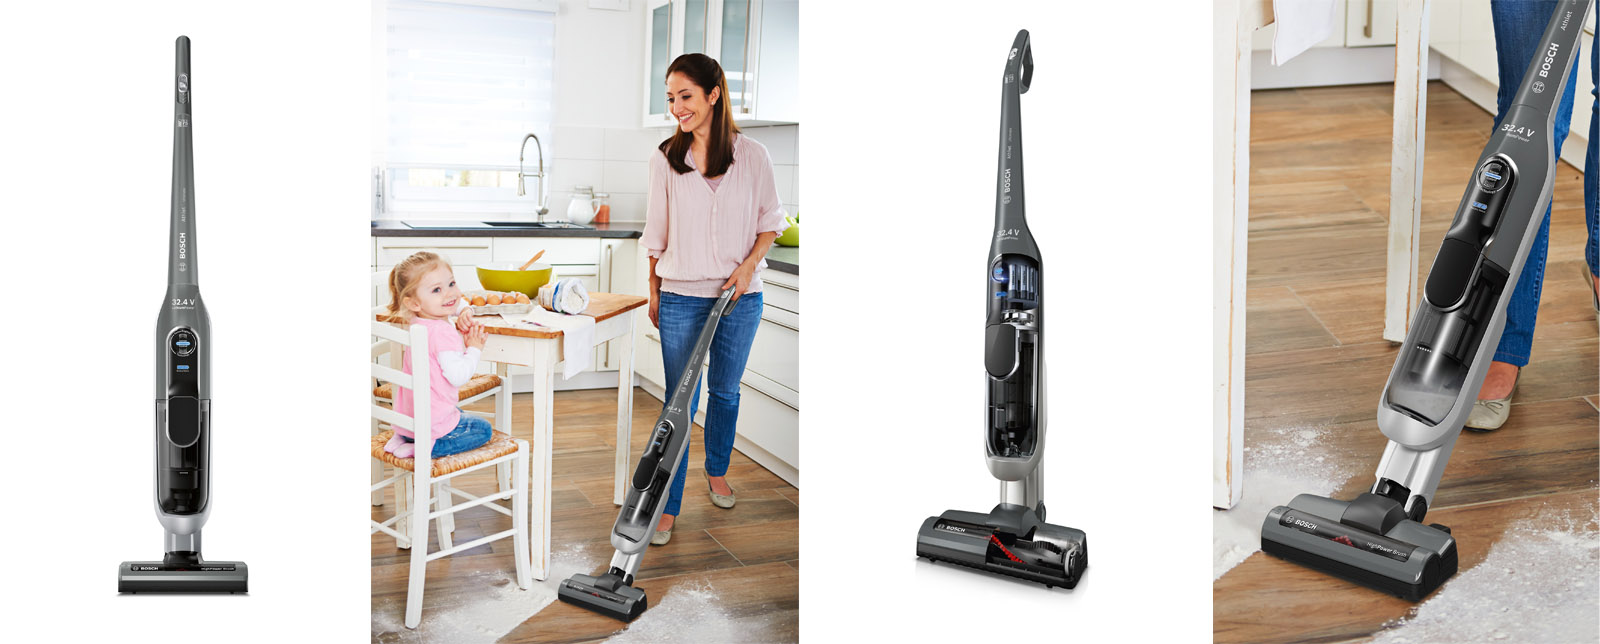 Bosch Athlet Ultimate Vacuum Review